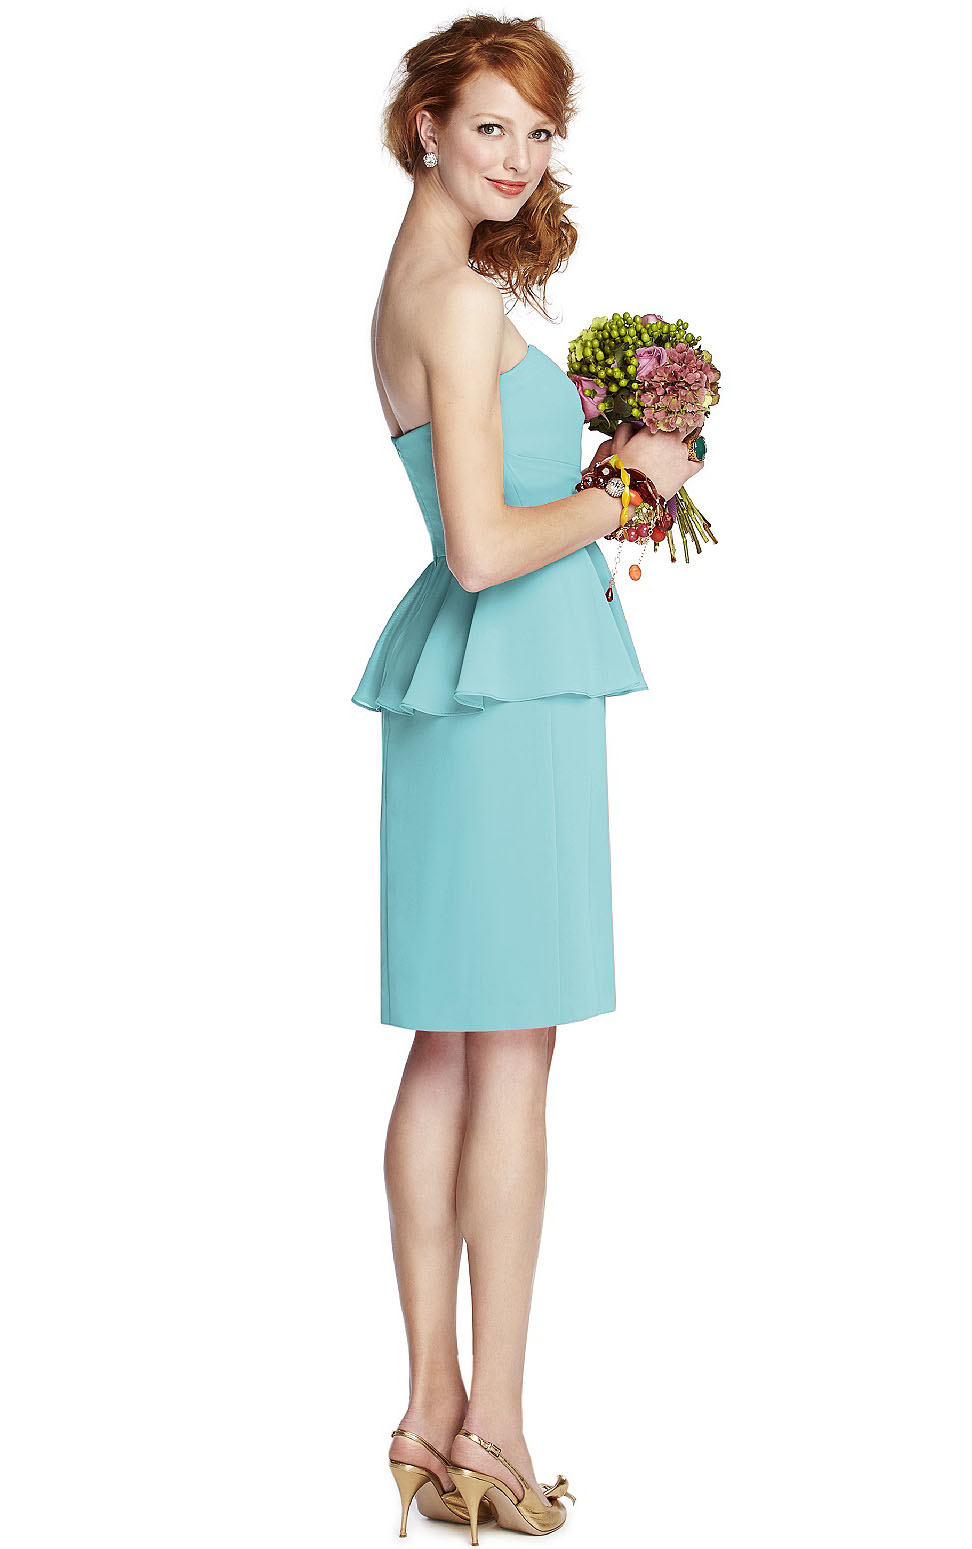 http://www.aislestyle.co.uk/chiffon-aline-natural-sleeveless-short-bridesmaid-dresses-p-4390.html